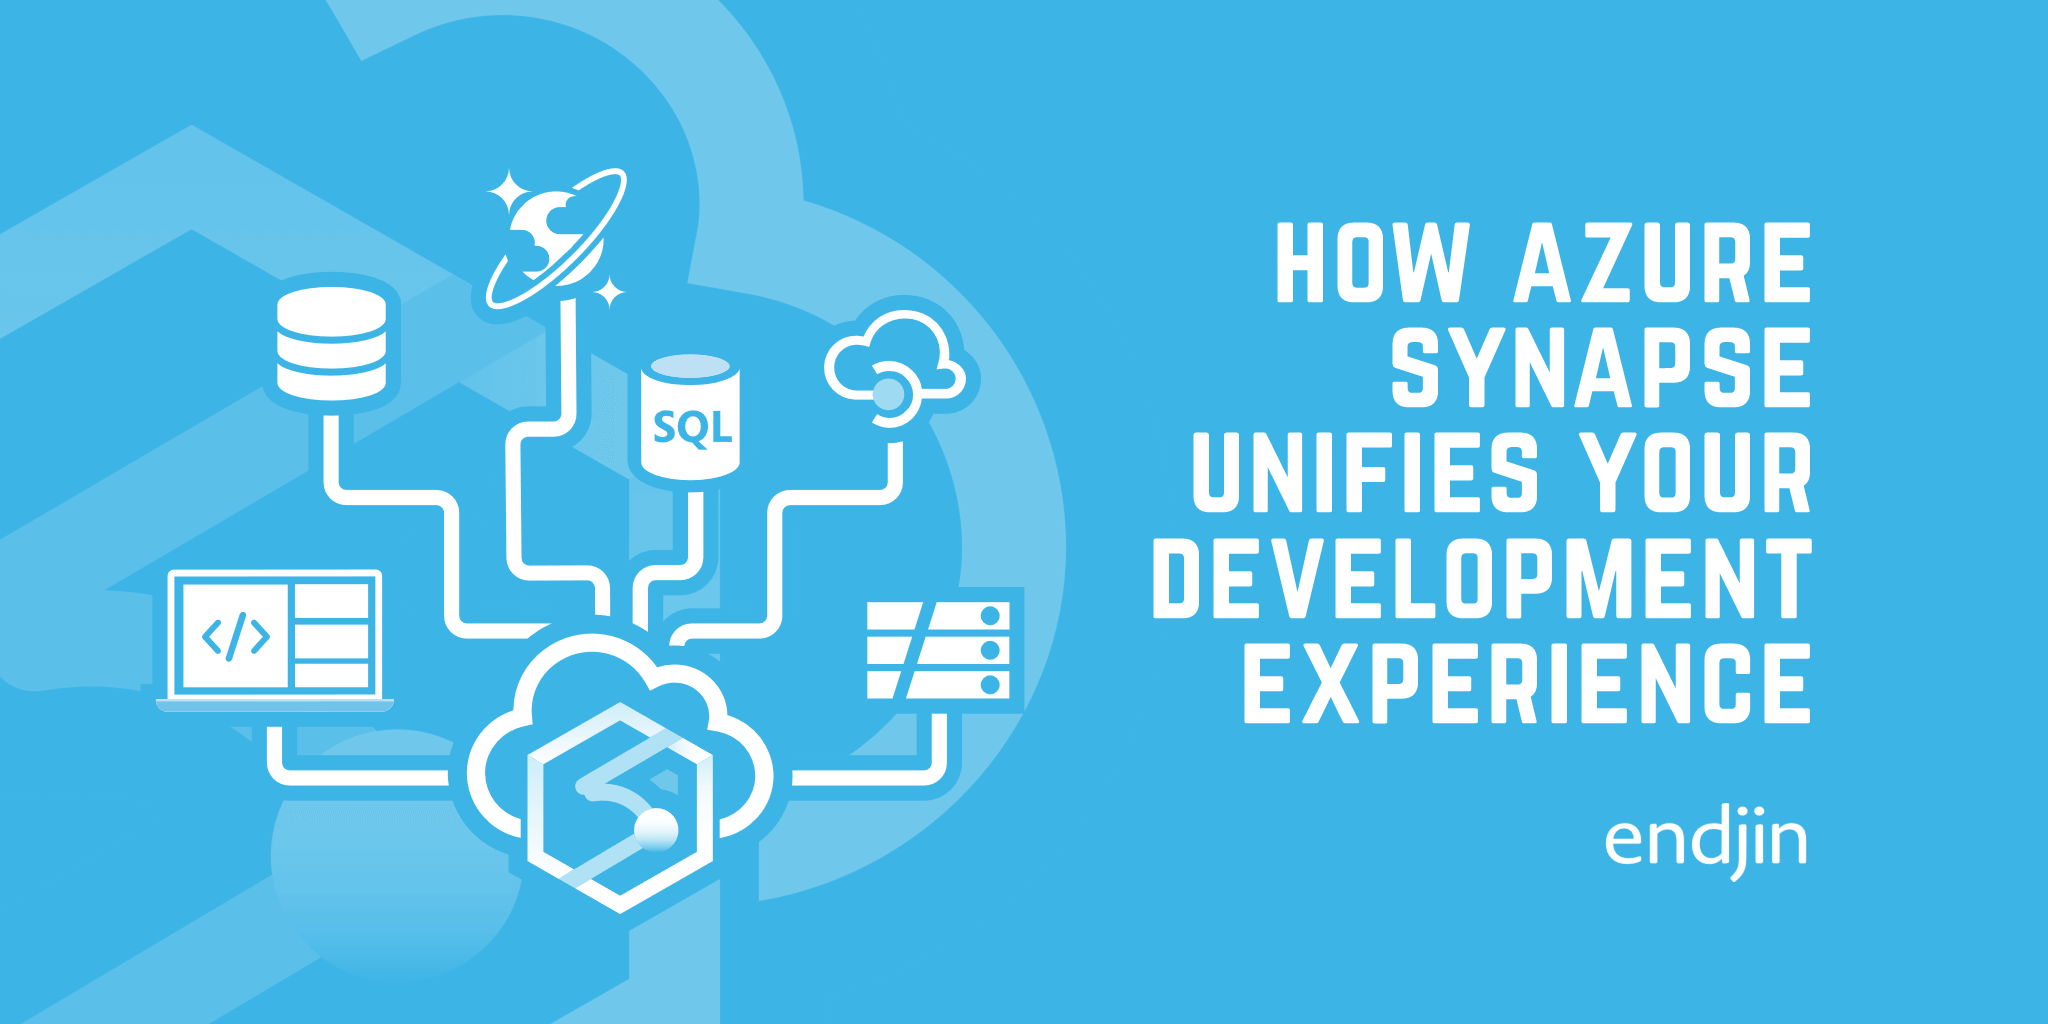 How Azure Synapse unifies your development experience